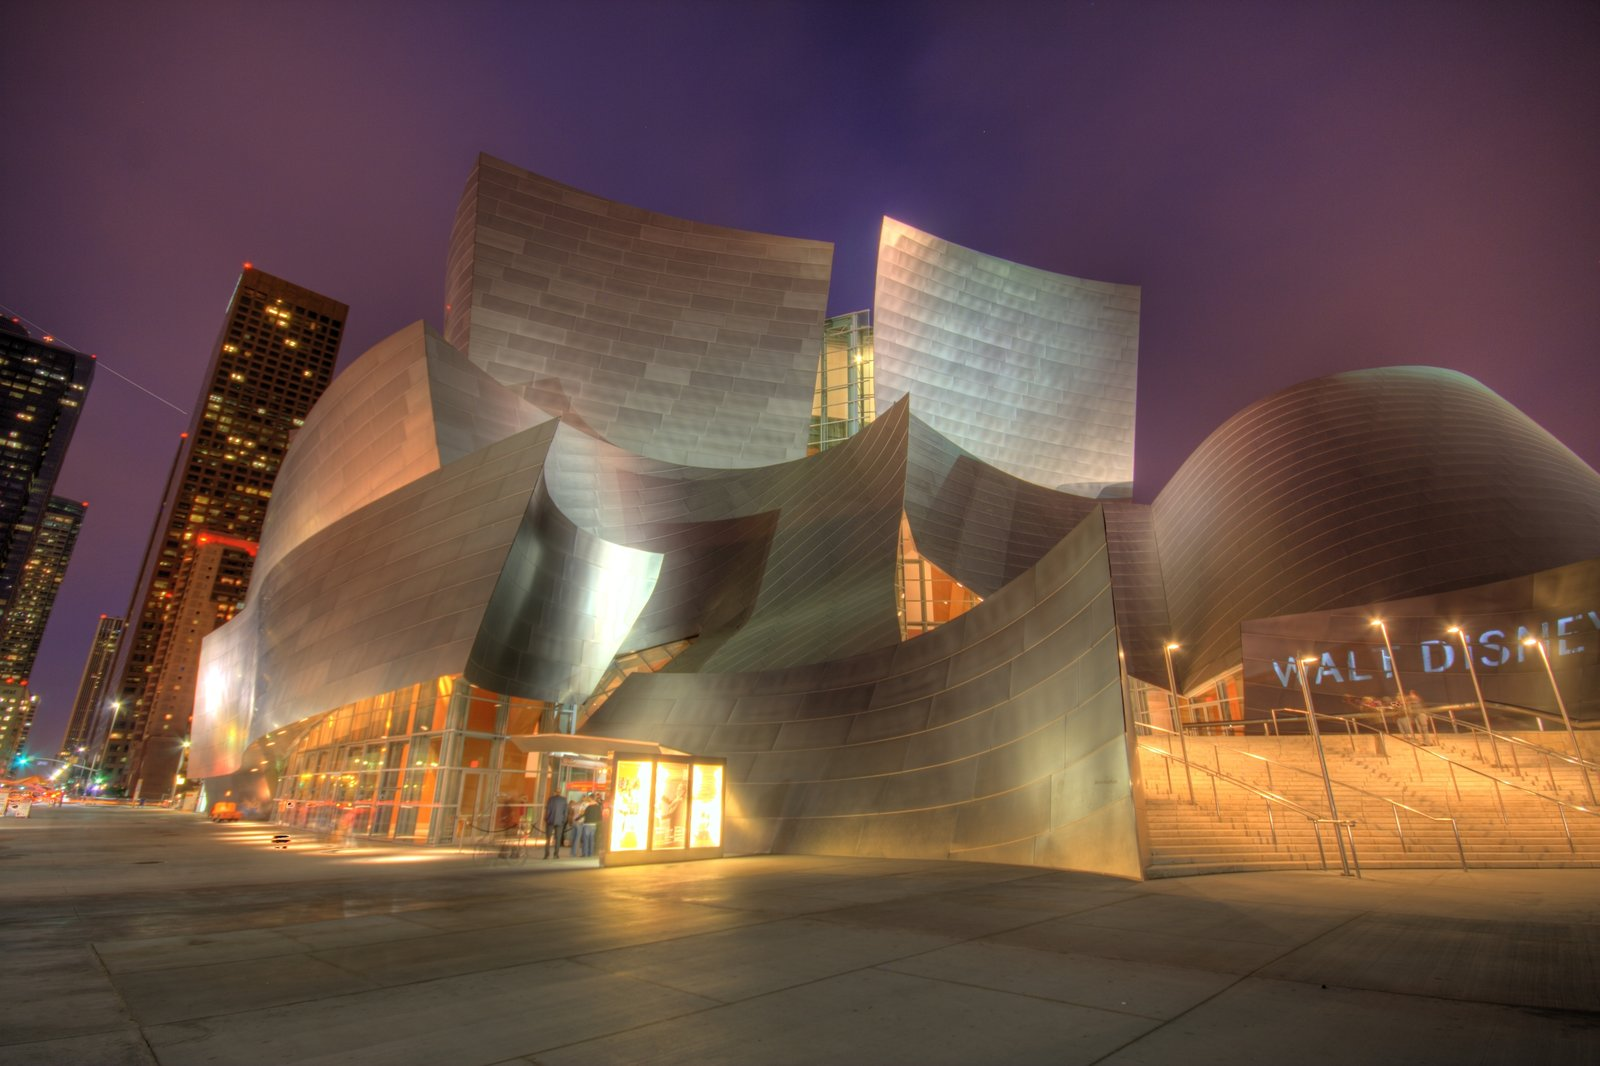 Walt Disney Concert Hall has received wide acclaim for its excellent acoustics and distinctive architecture. In the decade since its opening, the hall's sweeping, metallic surfaces have become associated with Frank Gehry's signature style. Tagged: Exterior.  Photo 3 of 14 in 13 Iconic Buildings Designed by Frank Gehry